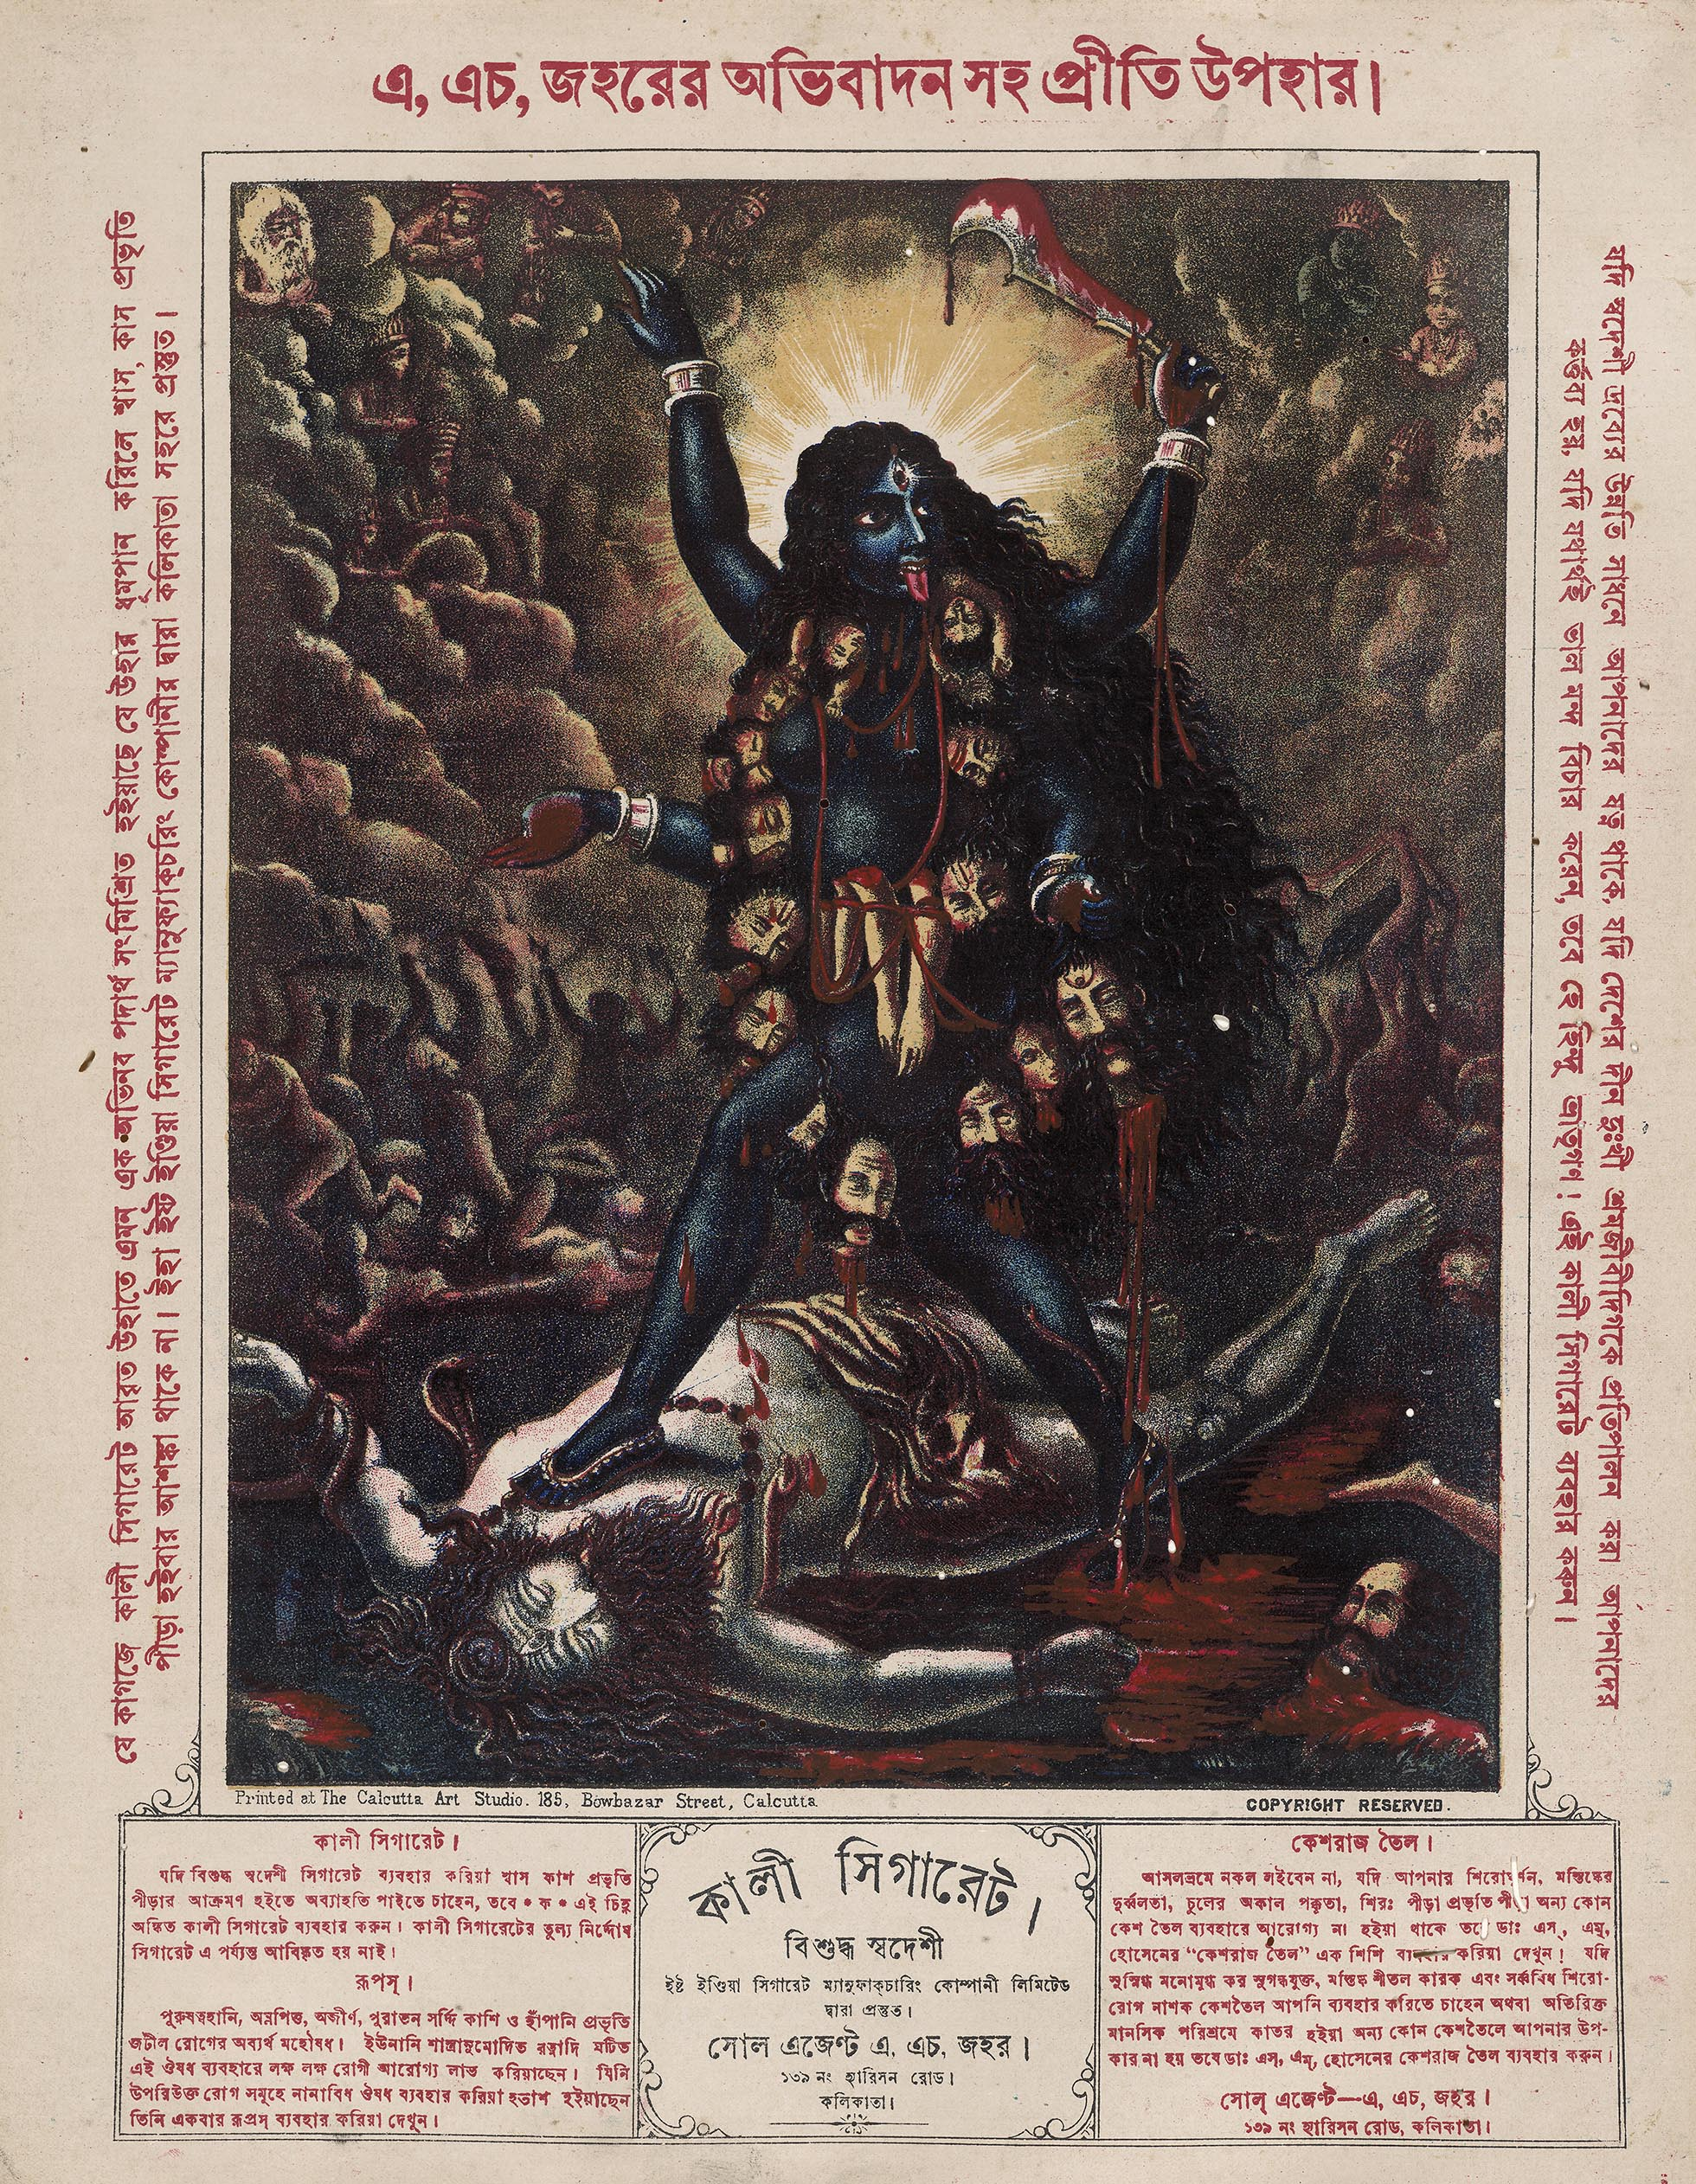 Kali strides over the bloody corpse of a white figure. She holds a bloody cutlass and wears a garland of severed heads.